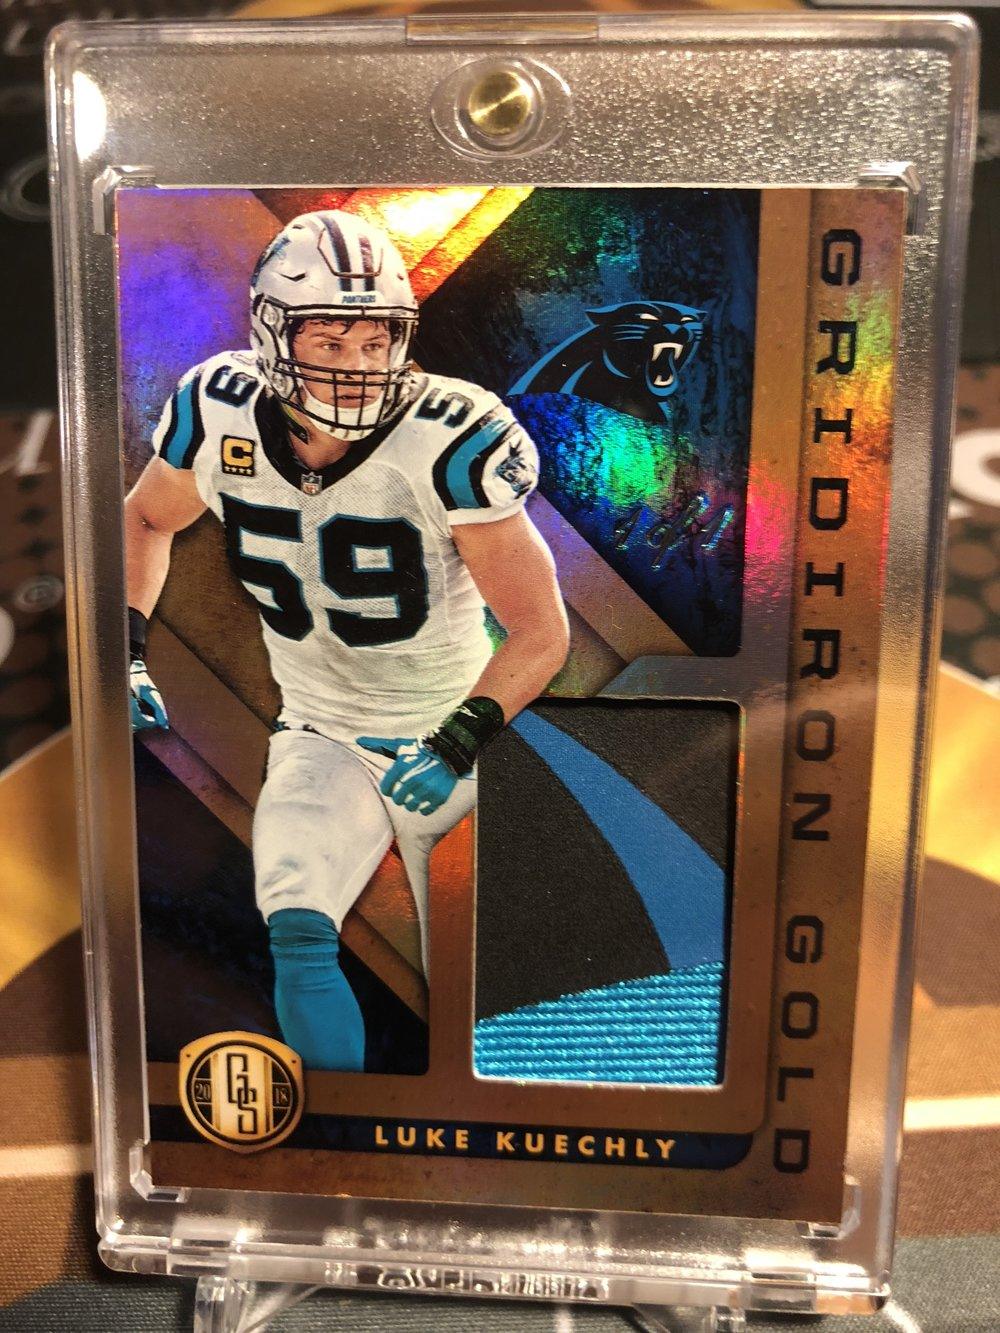 2018 Panini Gold Standard Football Luke Kuechly Gridiron Gold Premium Patch 1/1